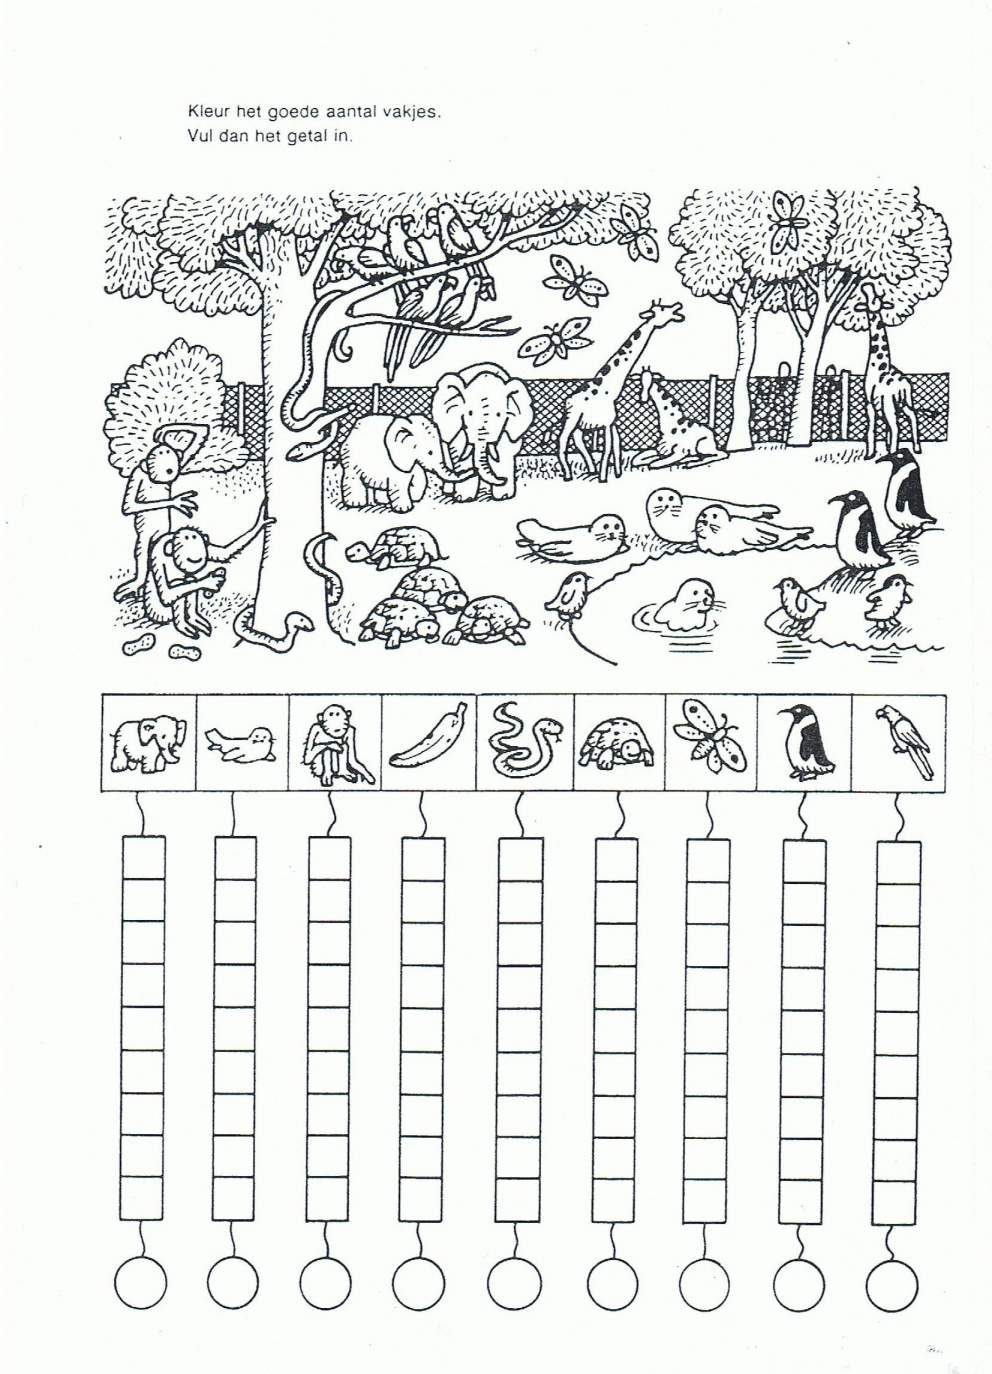 Christmas Coloring Multiplication Worksheets With Free Colouring Sheets Ks2 Printable Pages